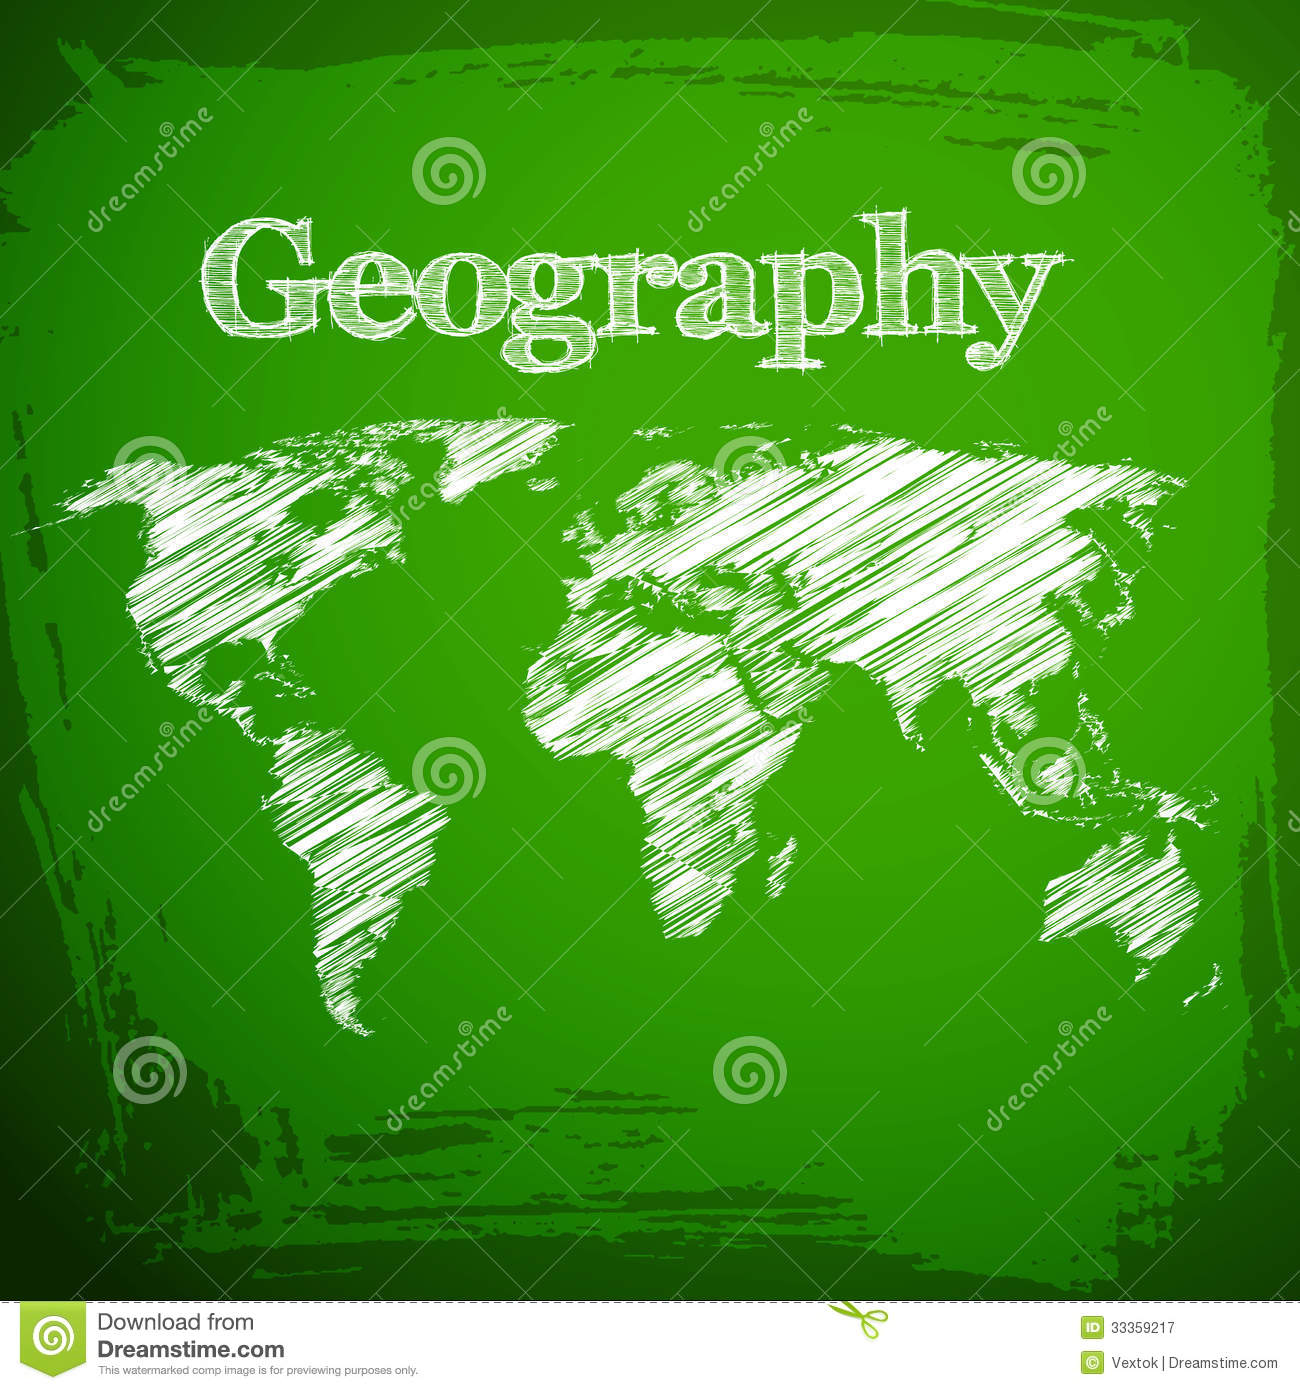 resource geography wallpaper - photo #9